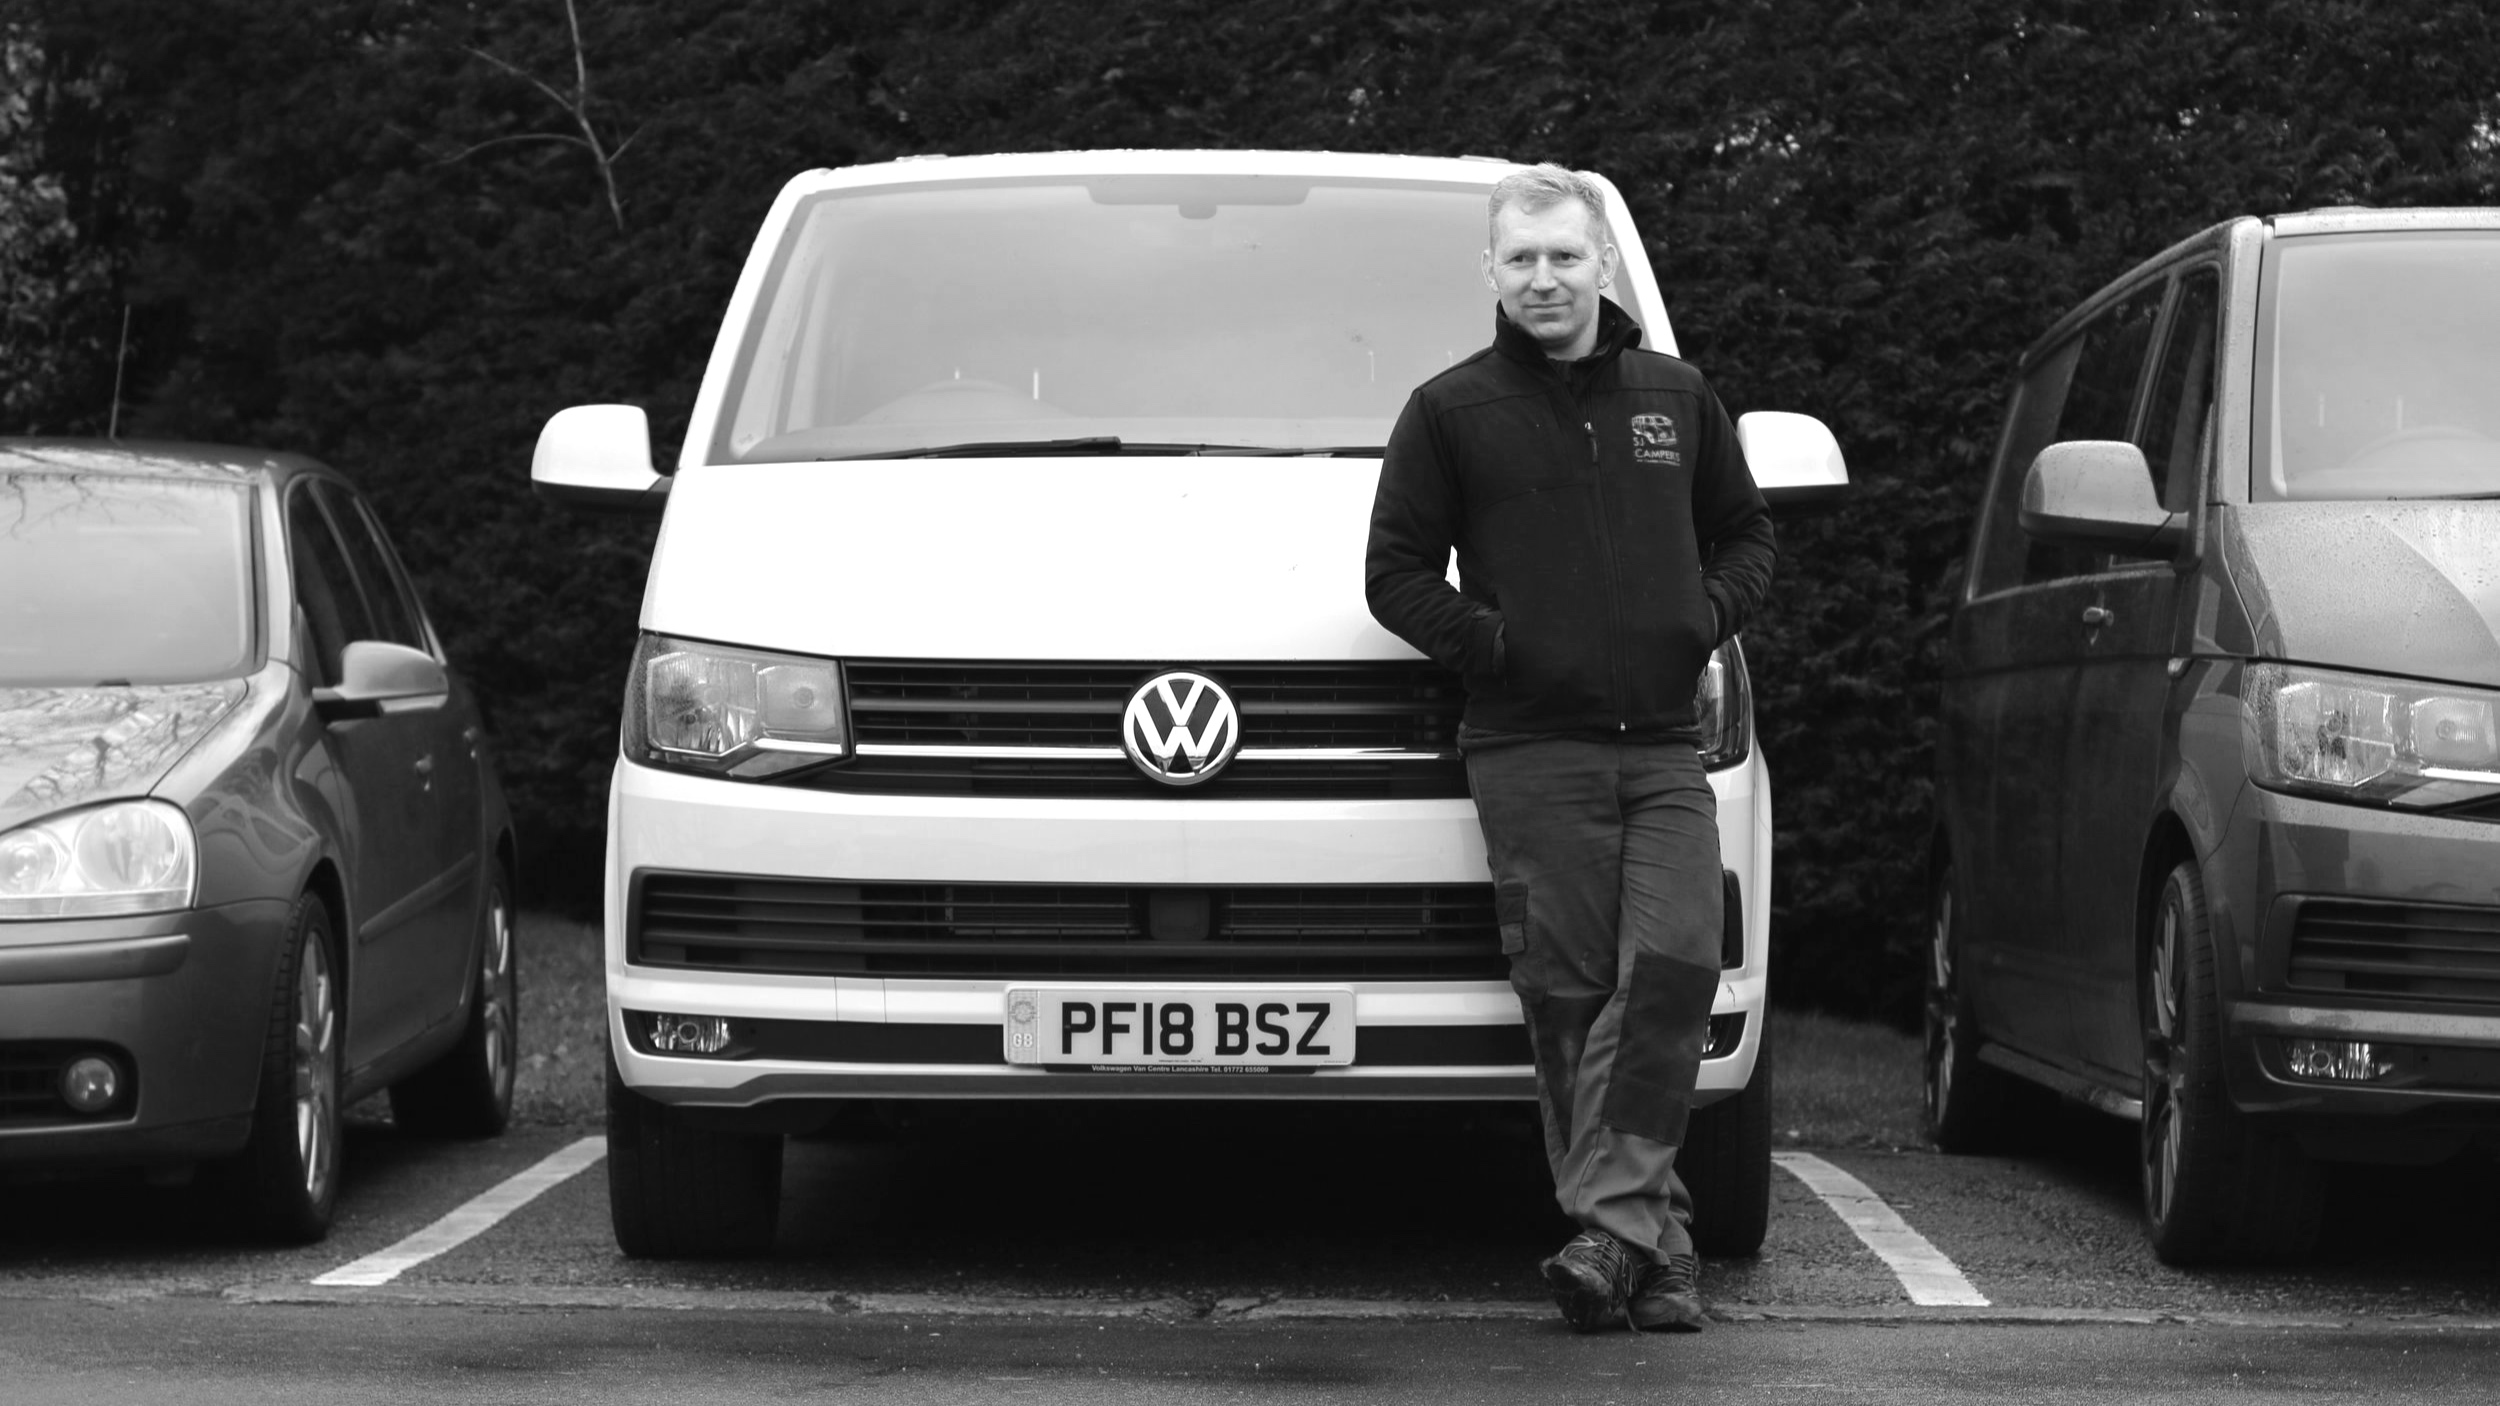 Stuart - Stu started SJ Campers in 2010, after 10 years working as workshop manager at Mitsubishi. From doing conversions and mechanics by himself, SJ Campers has gone from strength to strength, and now employs 8 members of staff.